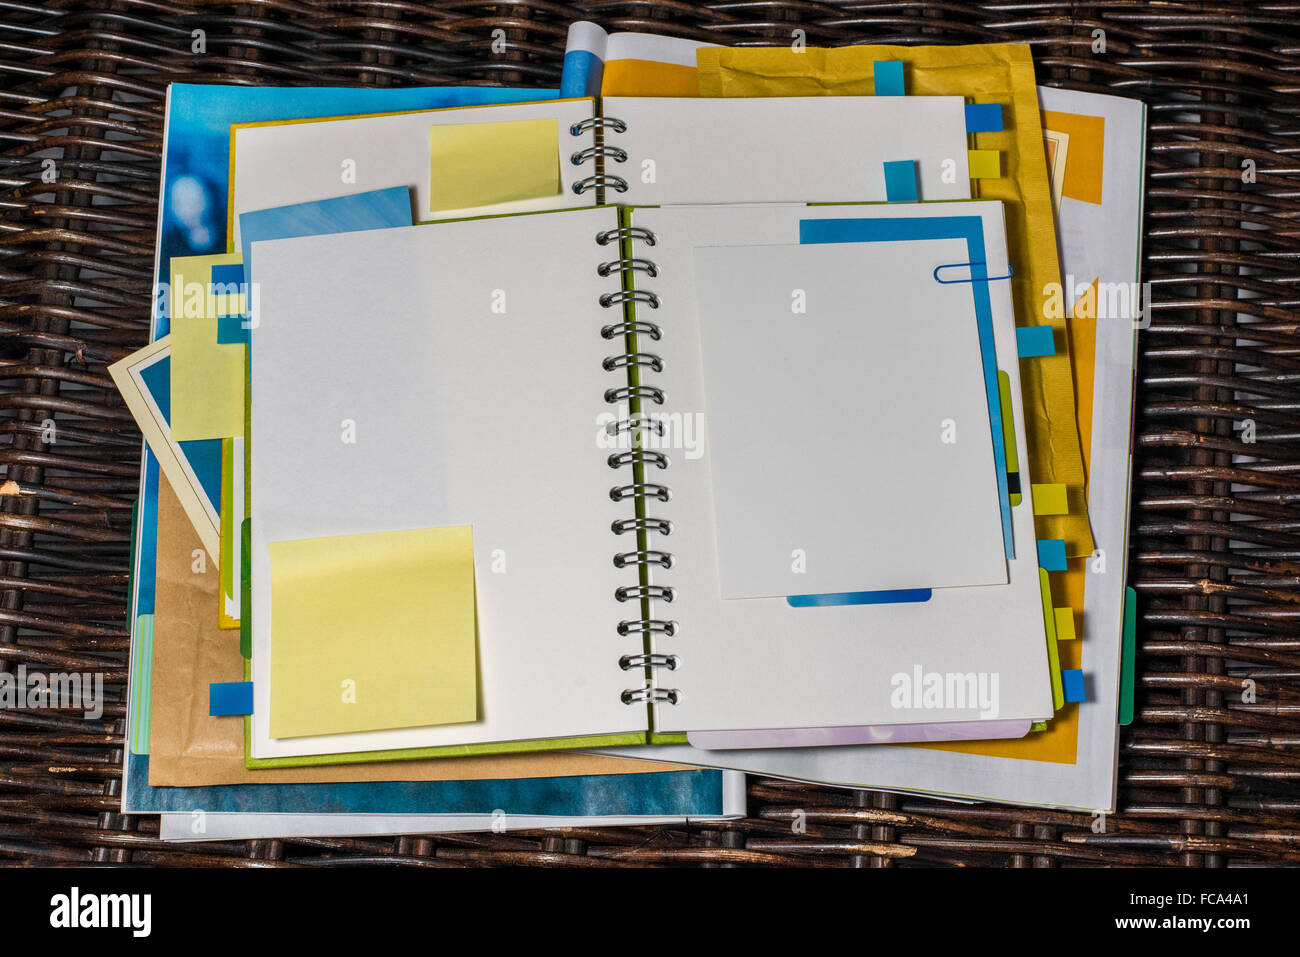 Getting organised and making notes in notebook - Stock Image